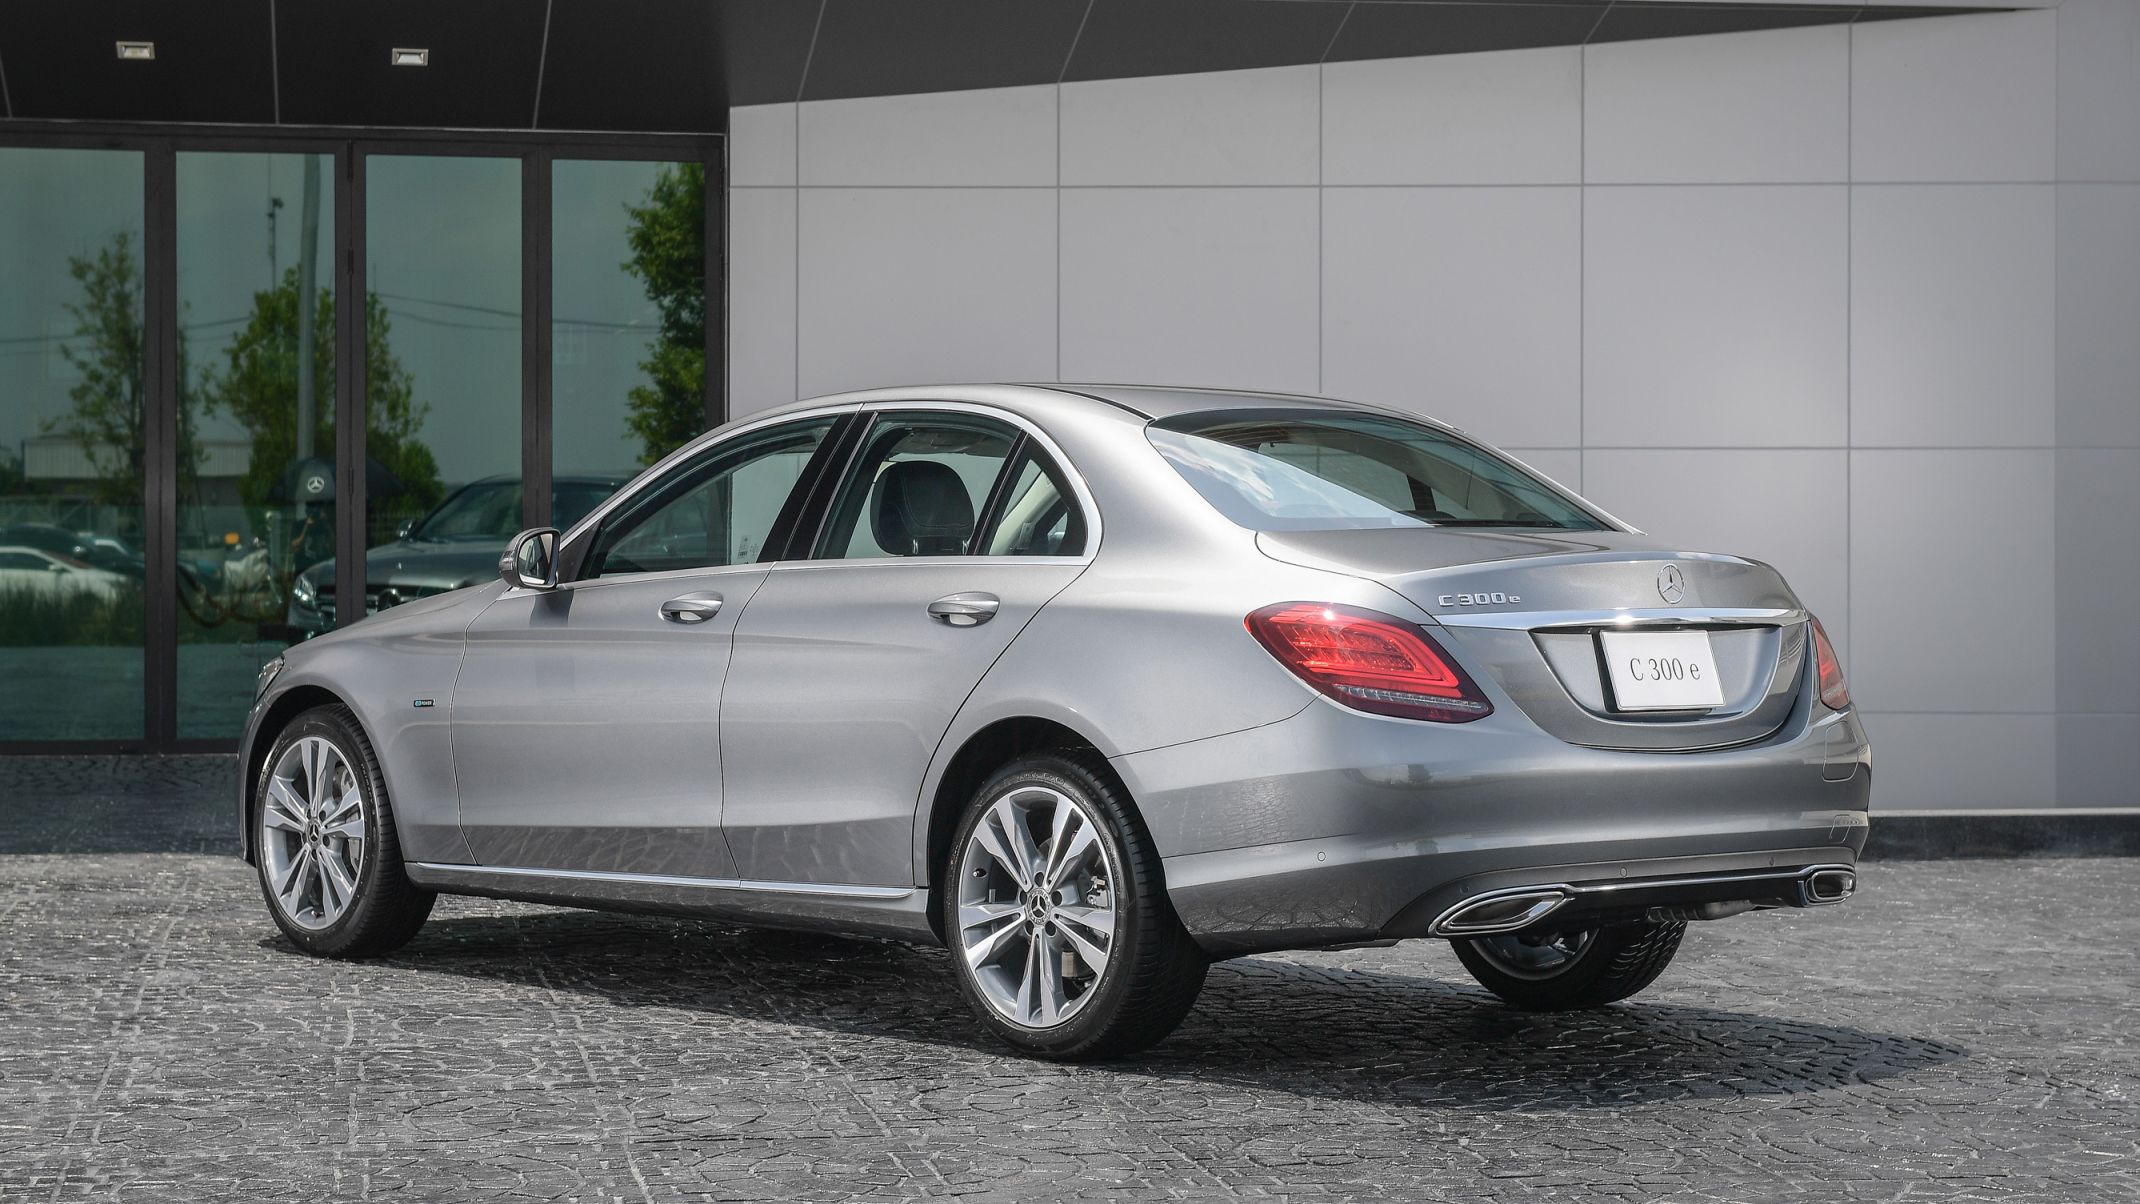 2019 Mercedes-Benz C300e Avantgarde